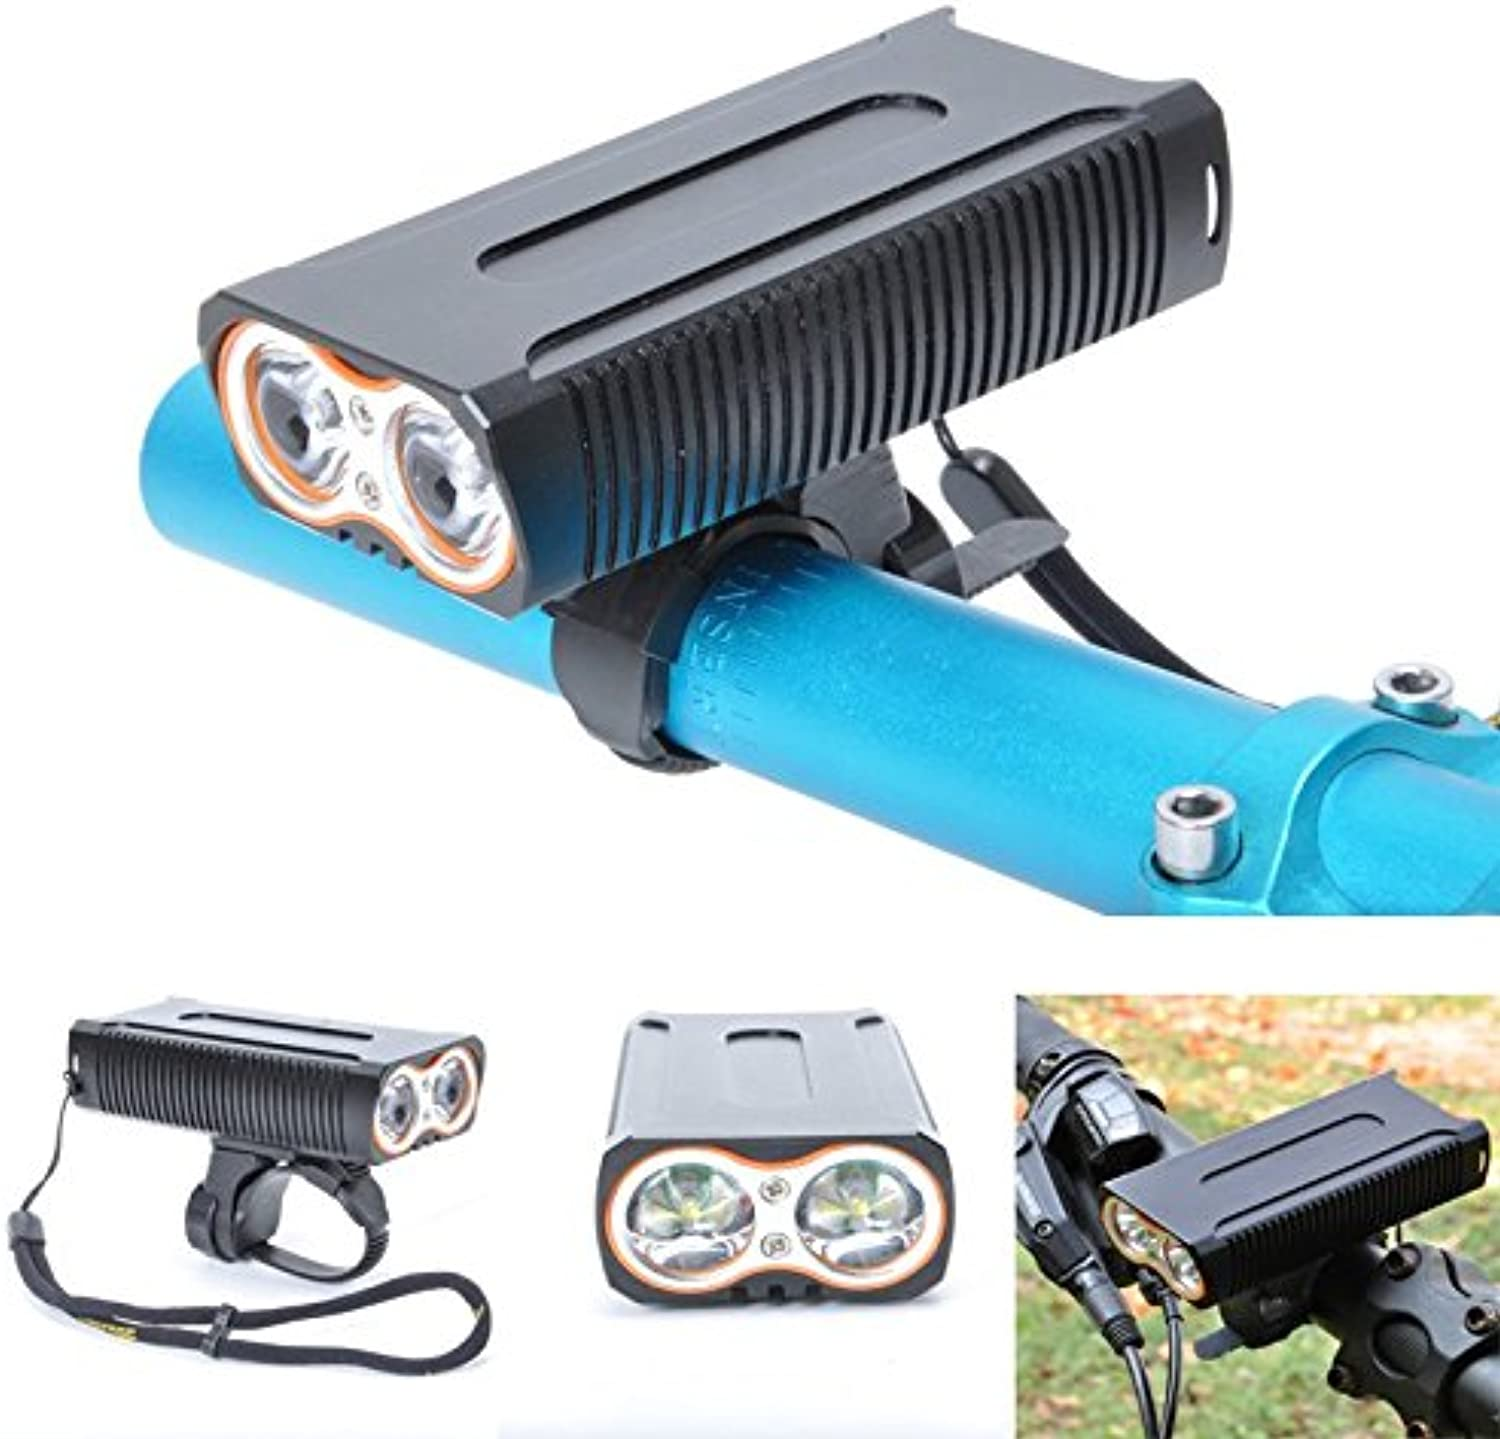 Exinnos DL09 800LM 2 x T6 LED 4 Modes Wide Angle IP65 Waterproof USB Charging Bike Front Light  Bicycle Lights  Headlights